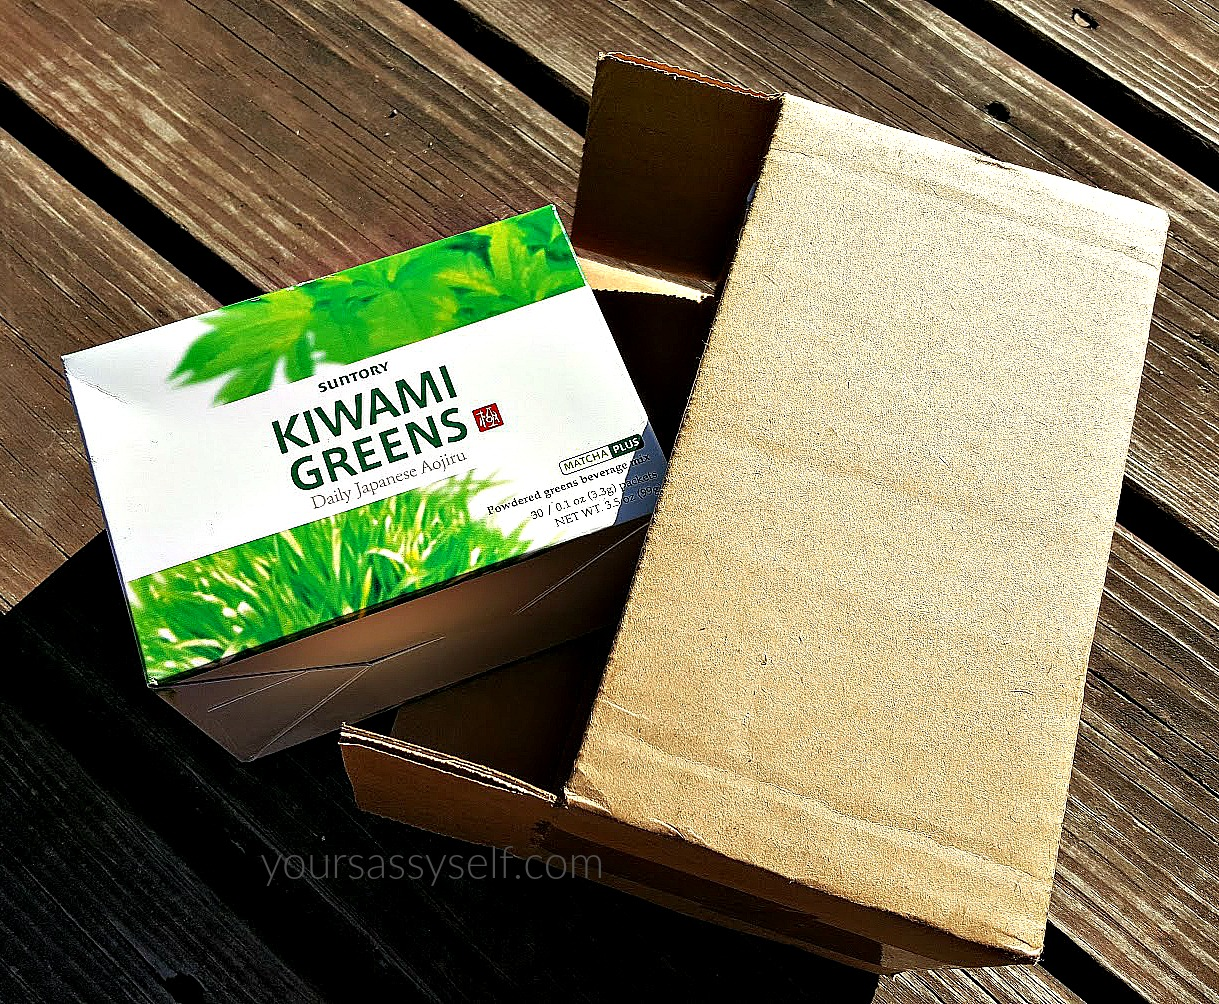 Kiwami Greens Subscription Delivery - yoursassyself.com